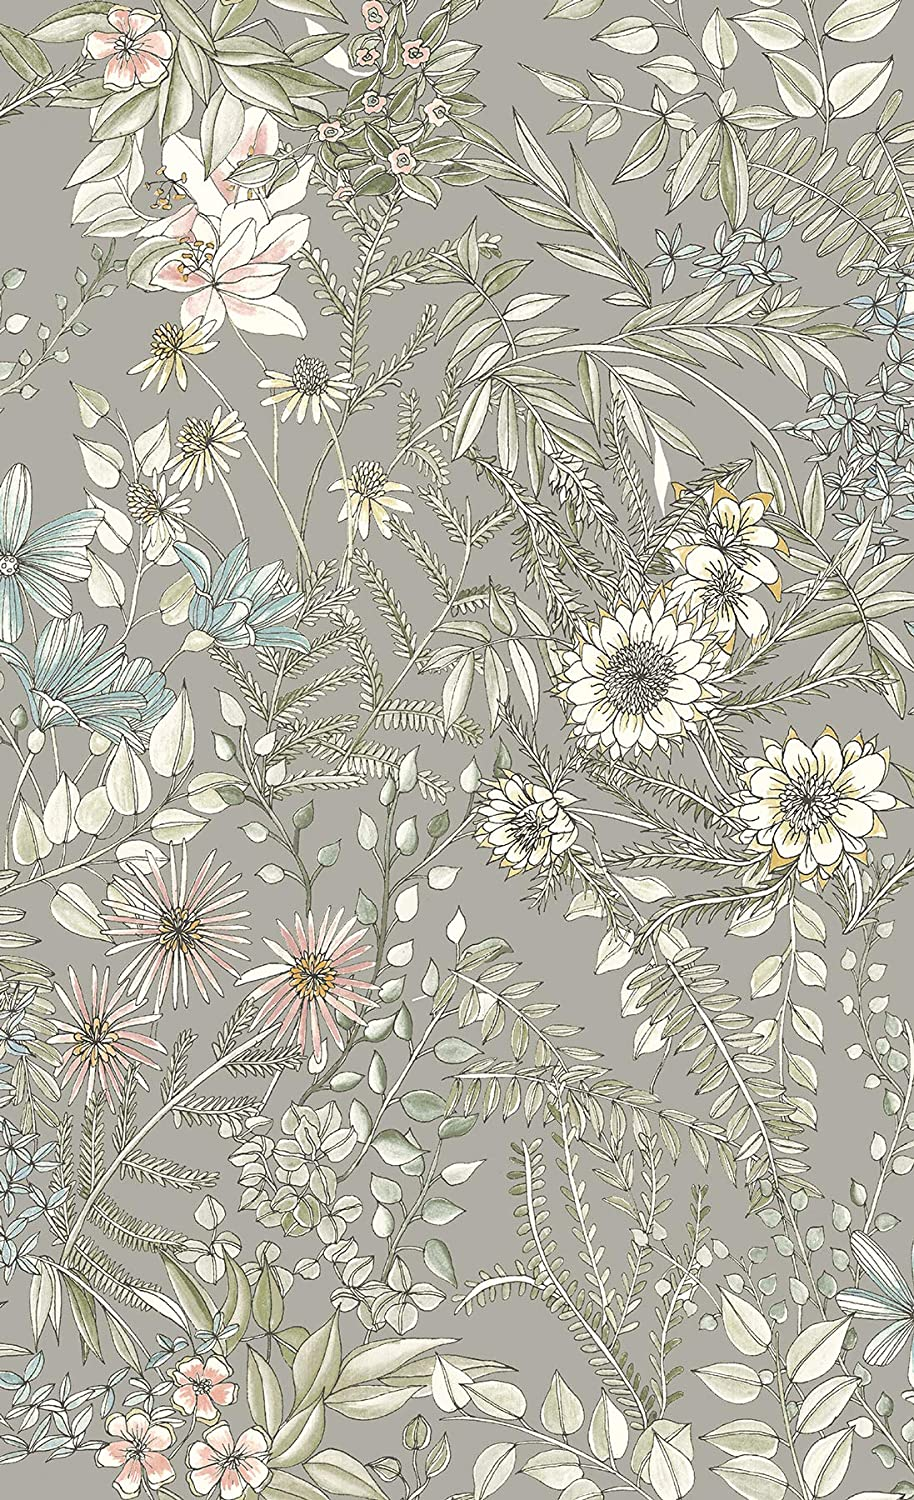 A Street Prints 2821 12903 Full Bloom Beige Floral Wallpaper